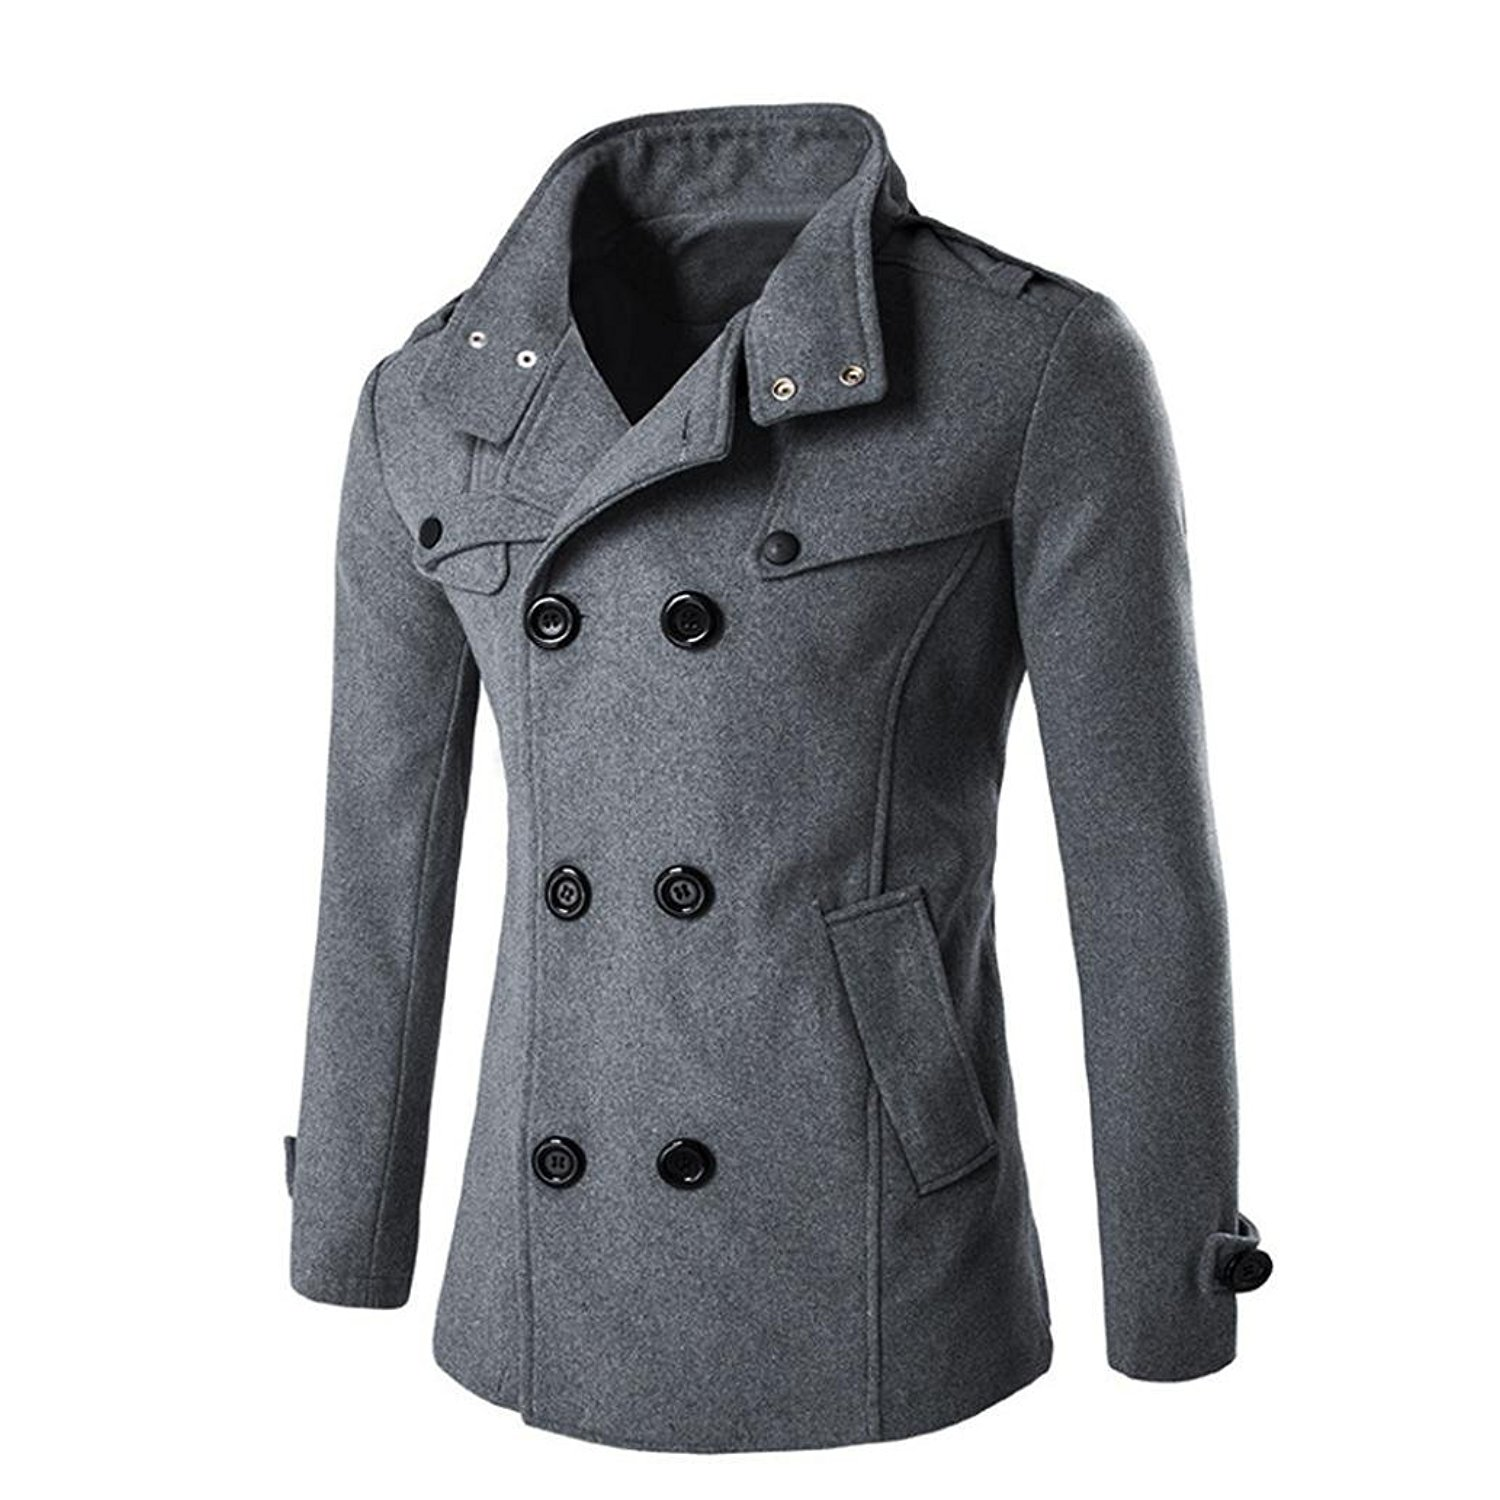 Peanutcool Fashion Jacket, Cool Men's Autumn and Winter Double - Breasted Collar Wool Coat Sweater Coat